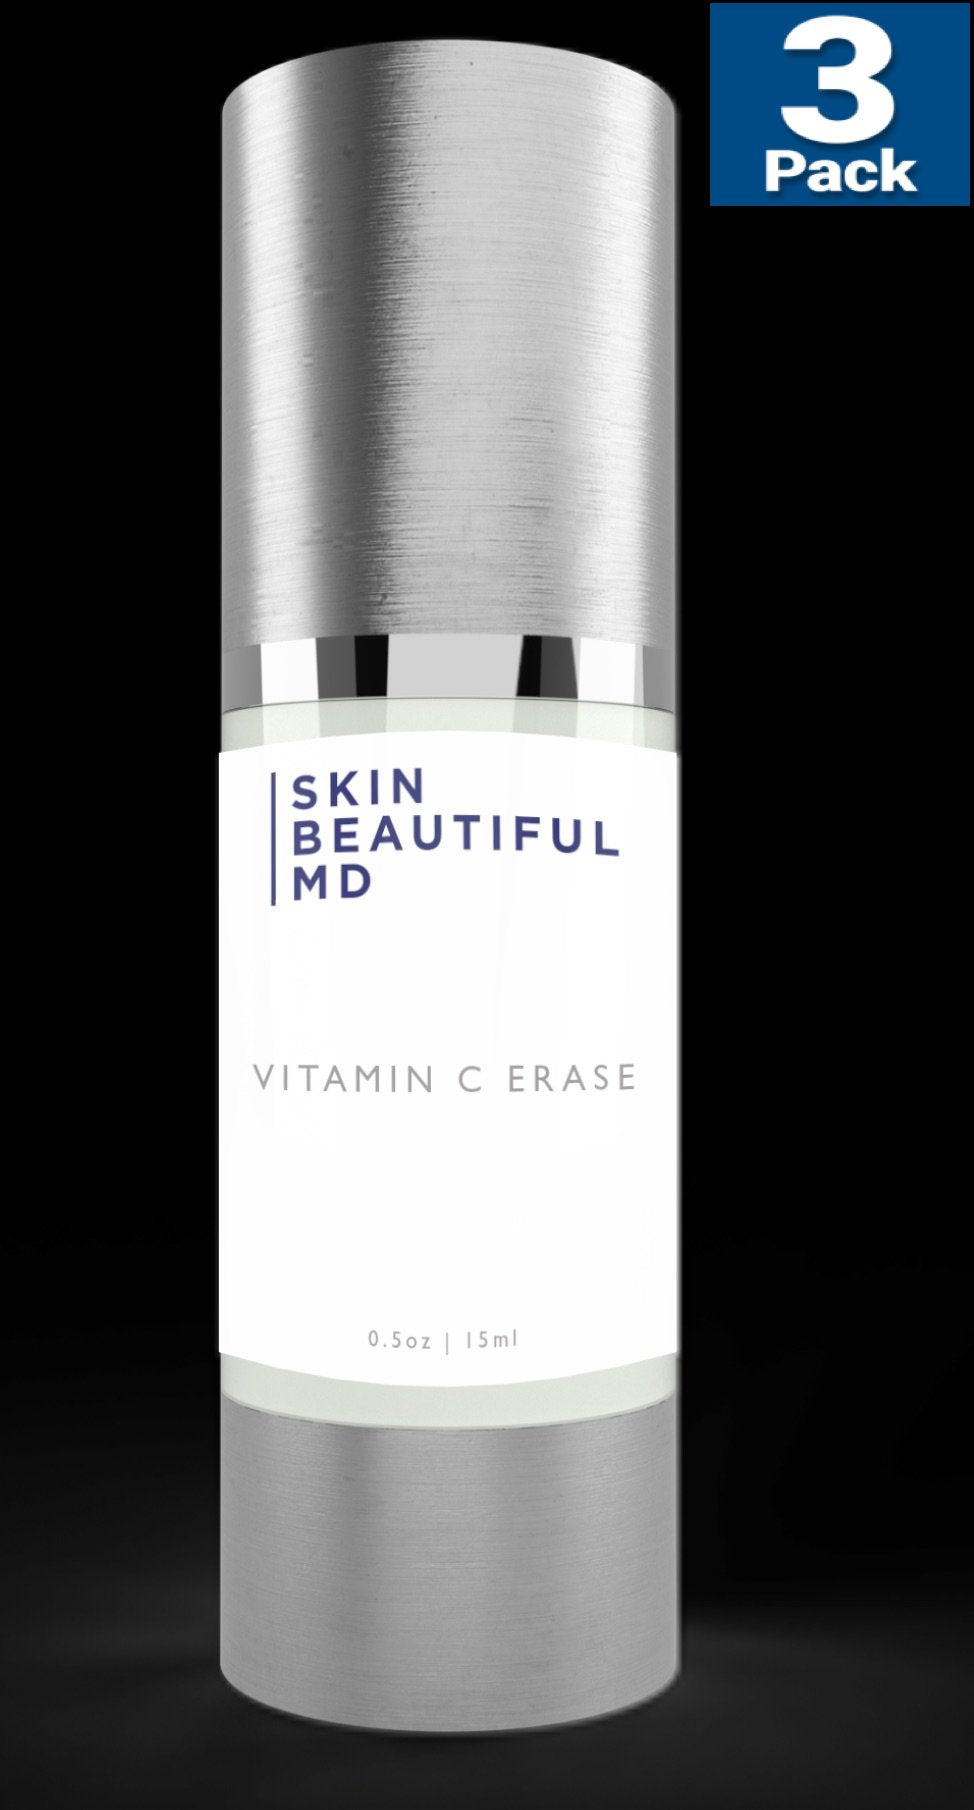 3 Skin Beautiful MD Instant Wrinkle Erase C For $72